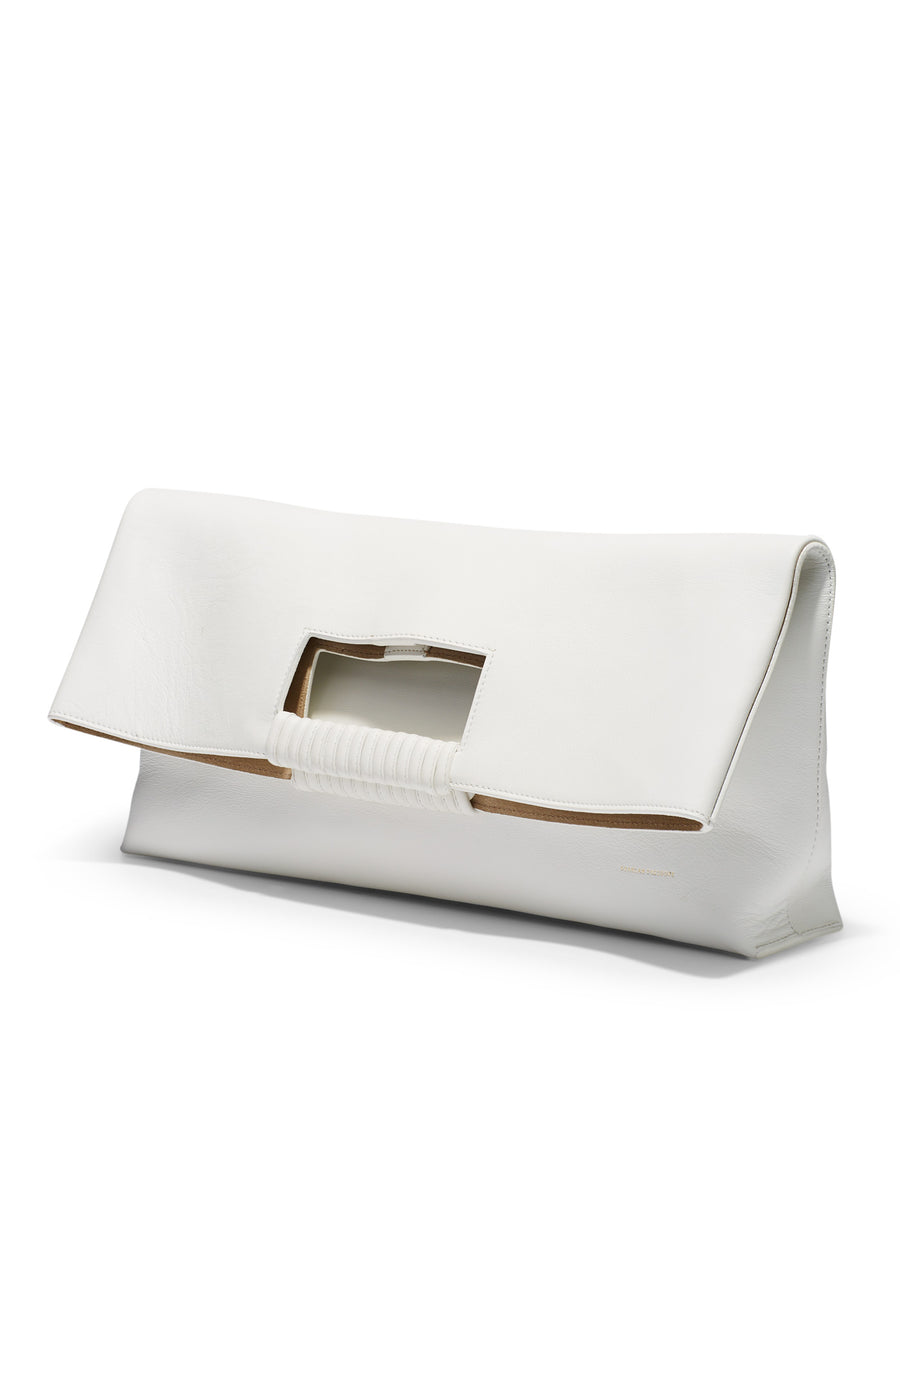 Folded Tote, bound leather handle, suede lining, magnetic closure, internal zipper pocket, color bianco